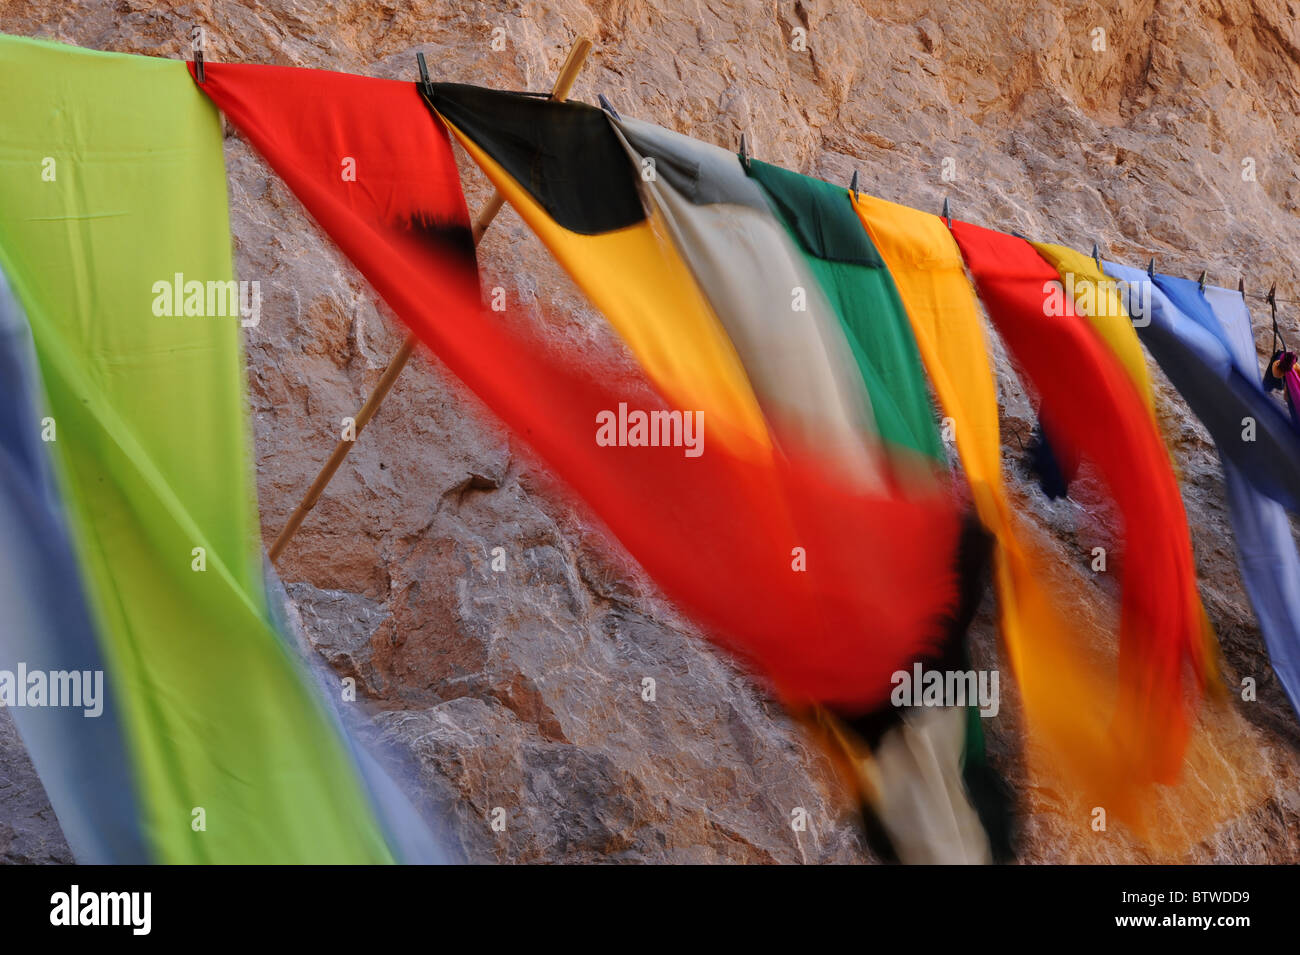 Brightly colored scarves for sale in the Todra Gorge, Southern Morocco. - Stock Image